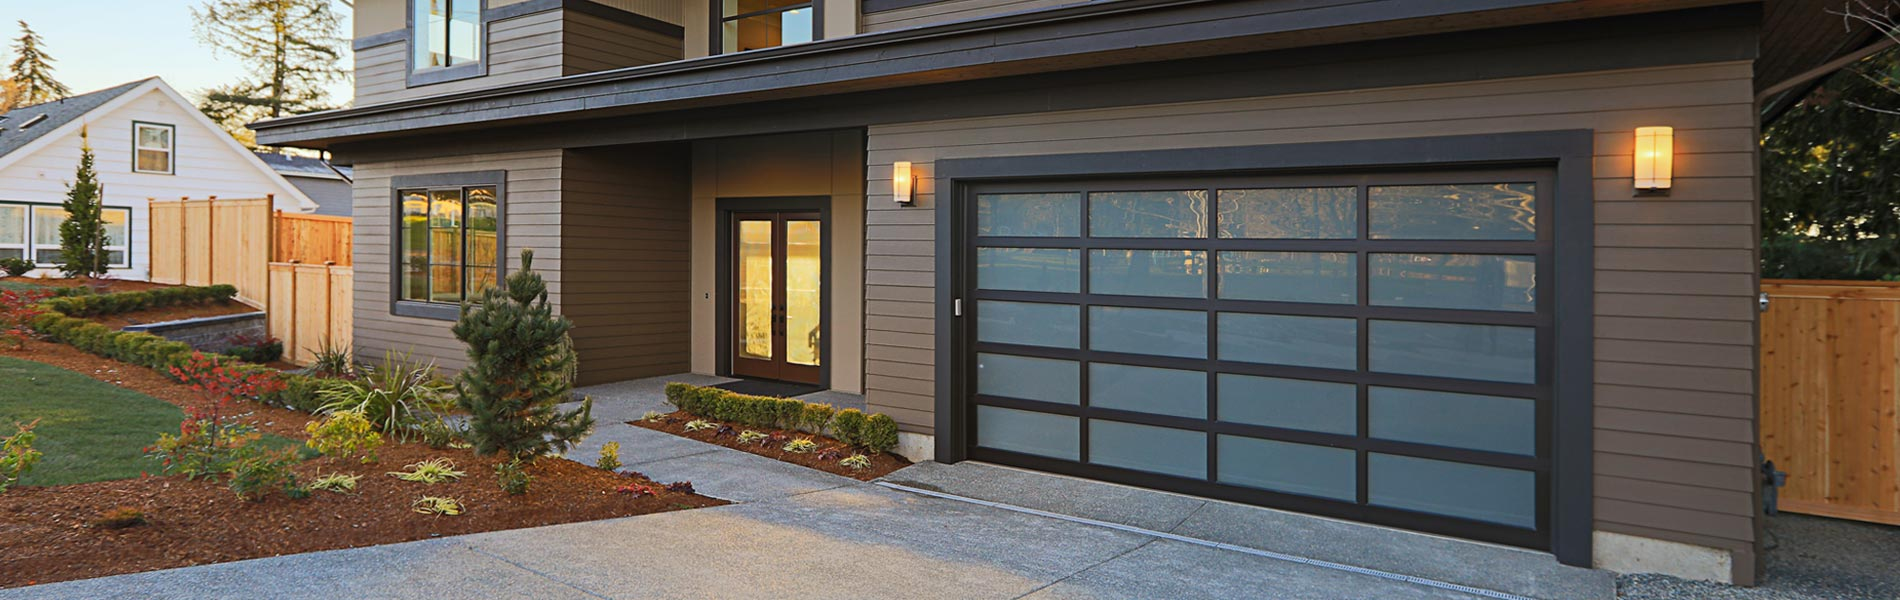 ... Community Garage Door Repair Service Las Vegas, NV 702 664 1768